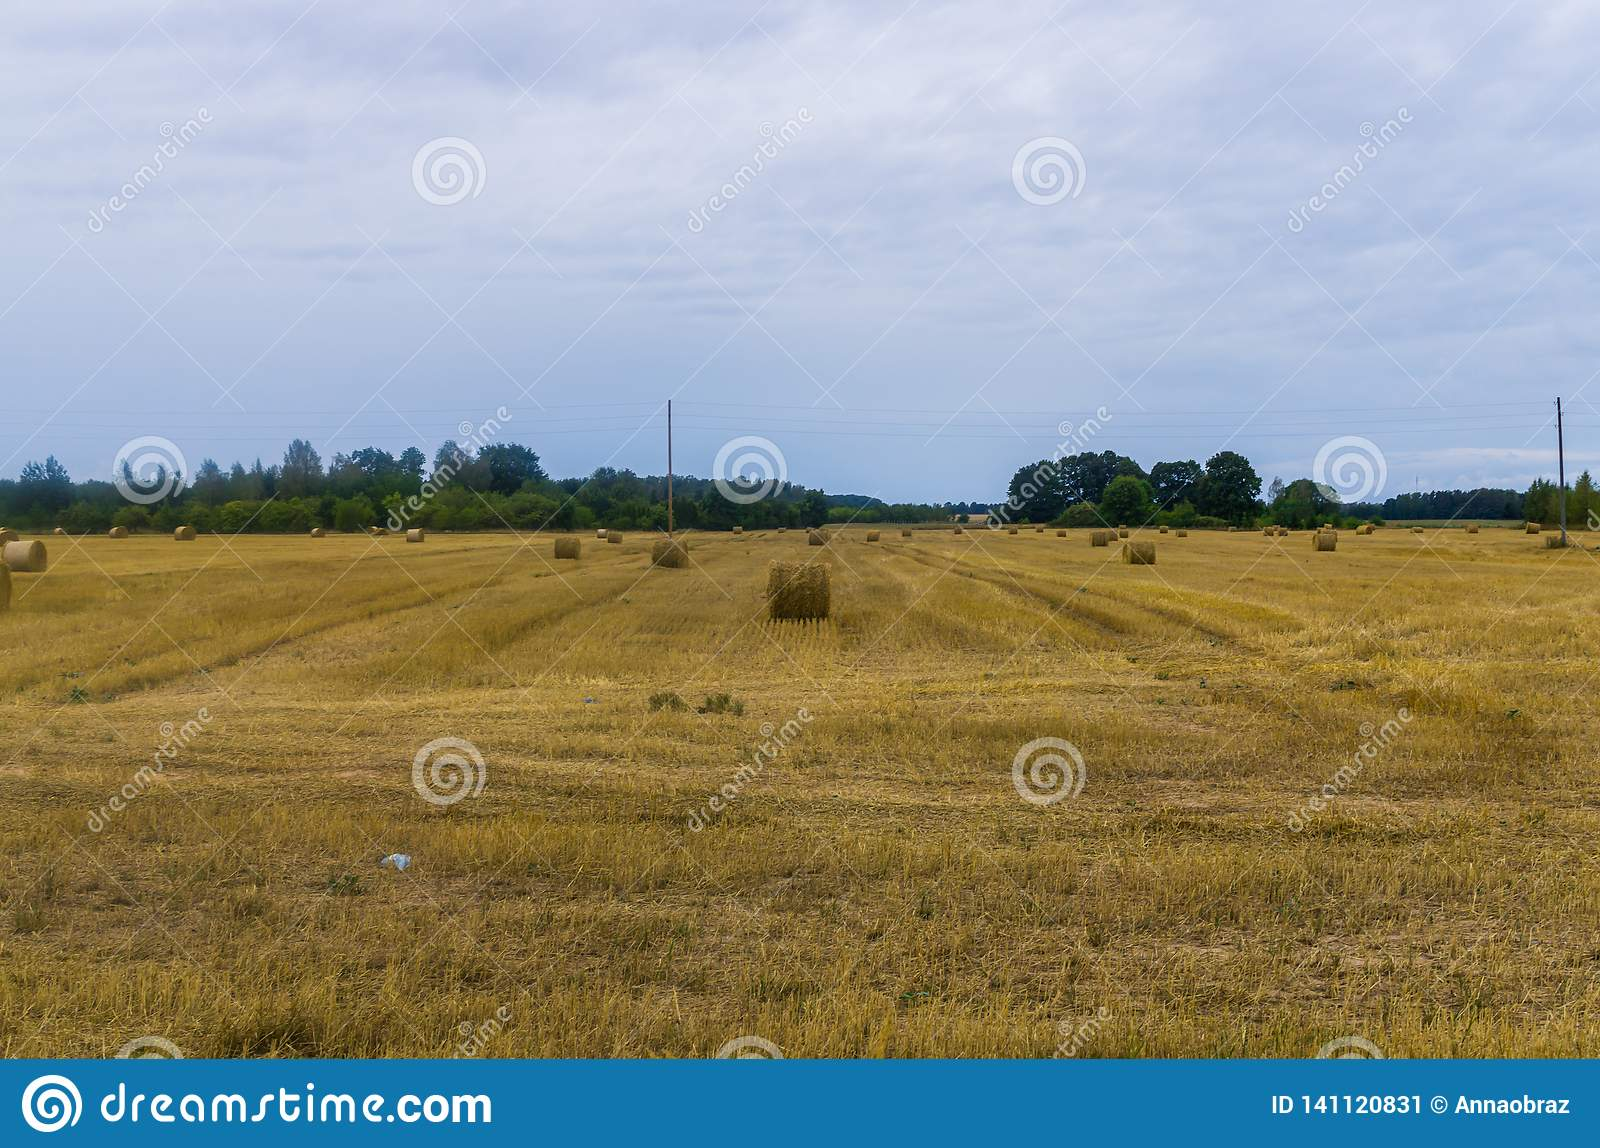 Bundles of hay rolls on the farmland, twisted hay in the field